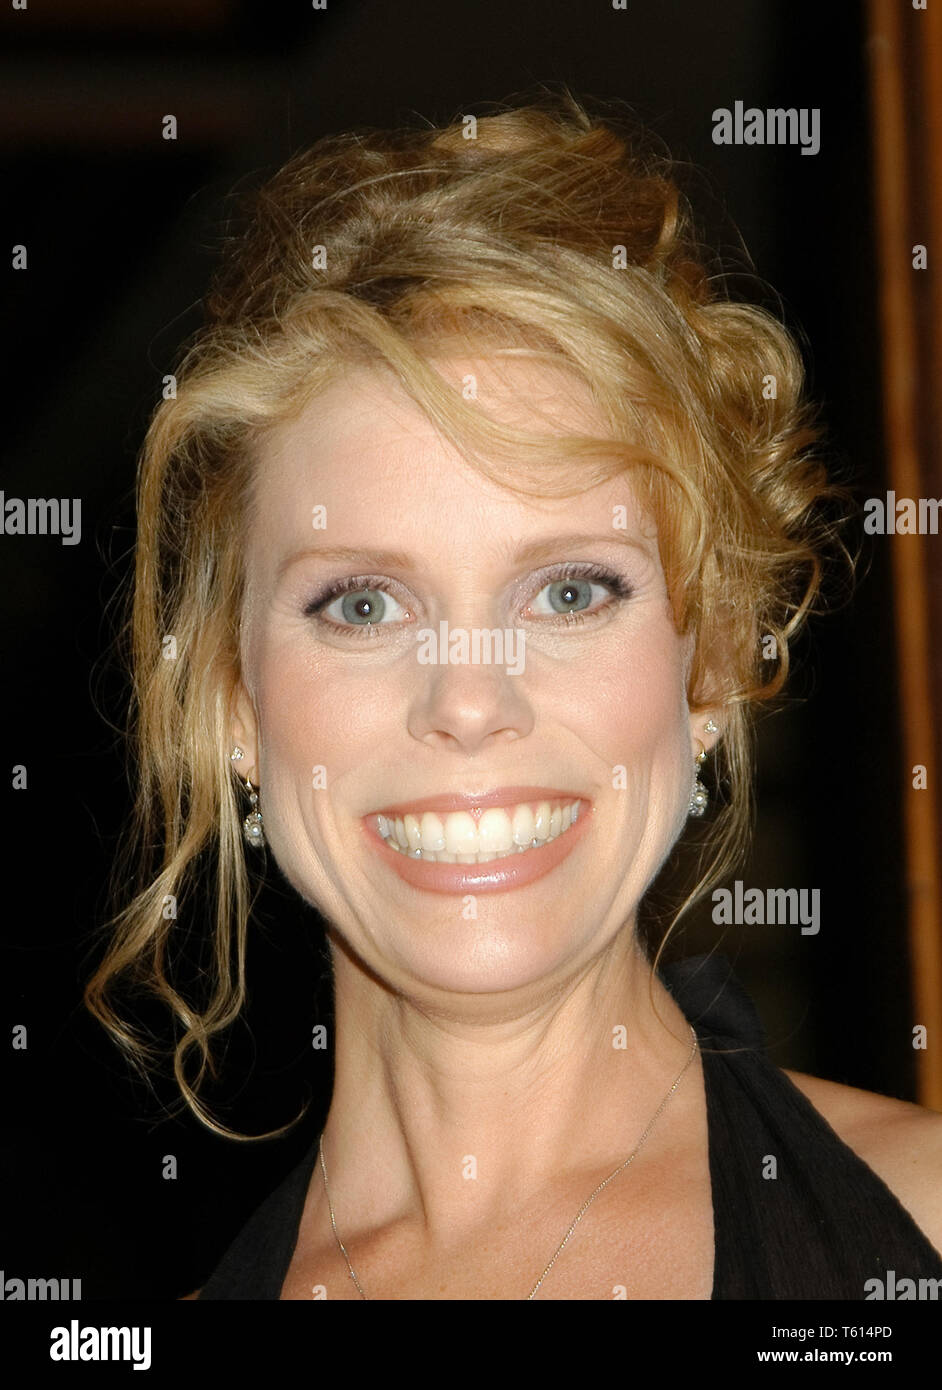 Cheryl Hines at the Academy of Television Arts & Sciences dinner honoring the 55th Annual Primetime Emmy Awards Nominees for Outstanding Performing Talent at Spagos in Beverly Hills, CA. The event took place on Thursday, September 18, 2003. Photo by: SBM / PictureLux  File Reference # 33790_1528SBMPLX - Stock Image